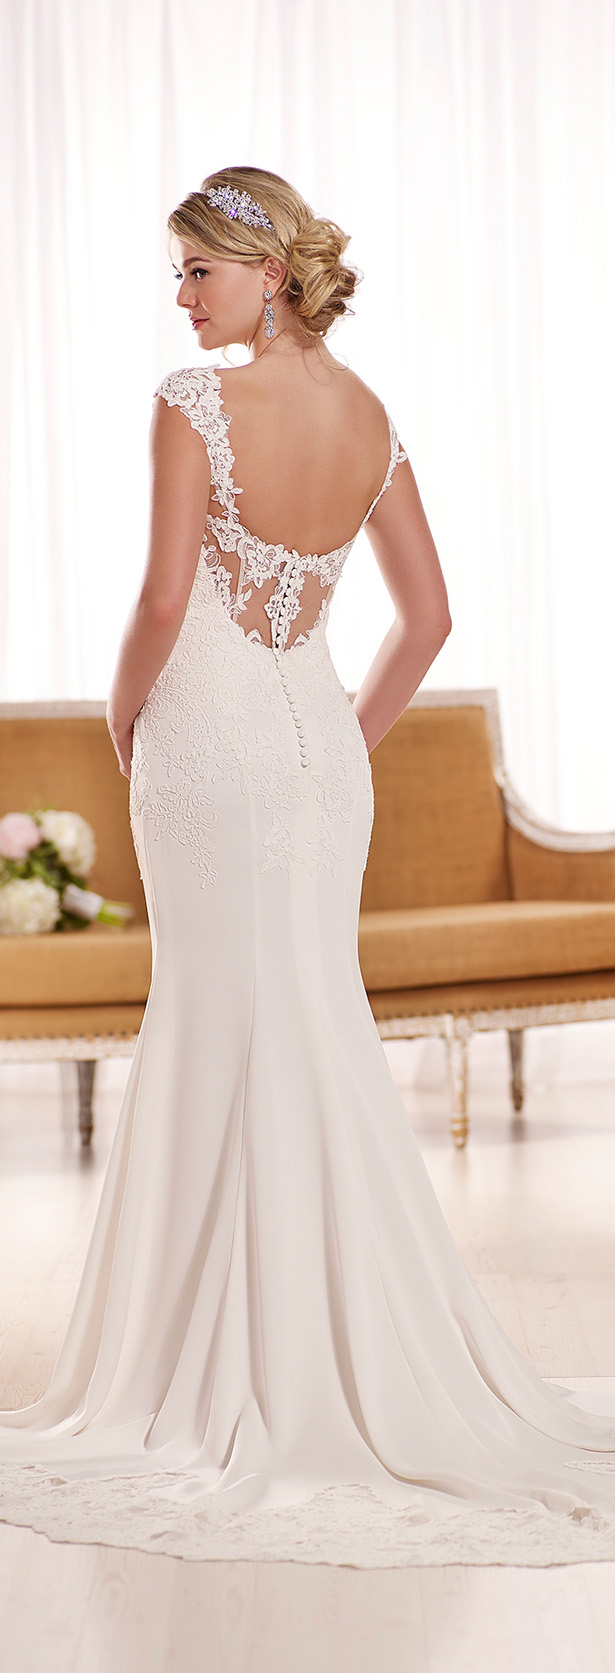 amazing essence wedding dress of australia d1042. 8600 from our